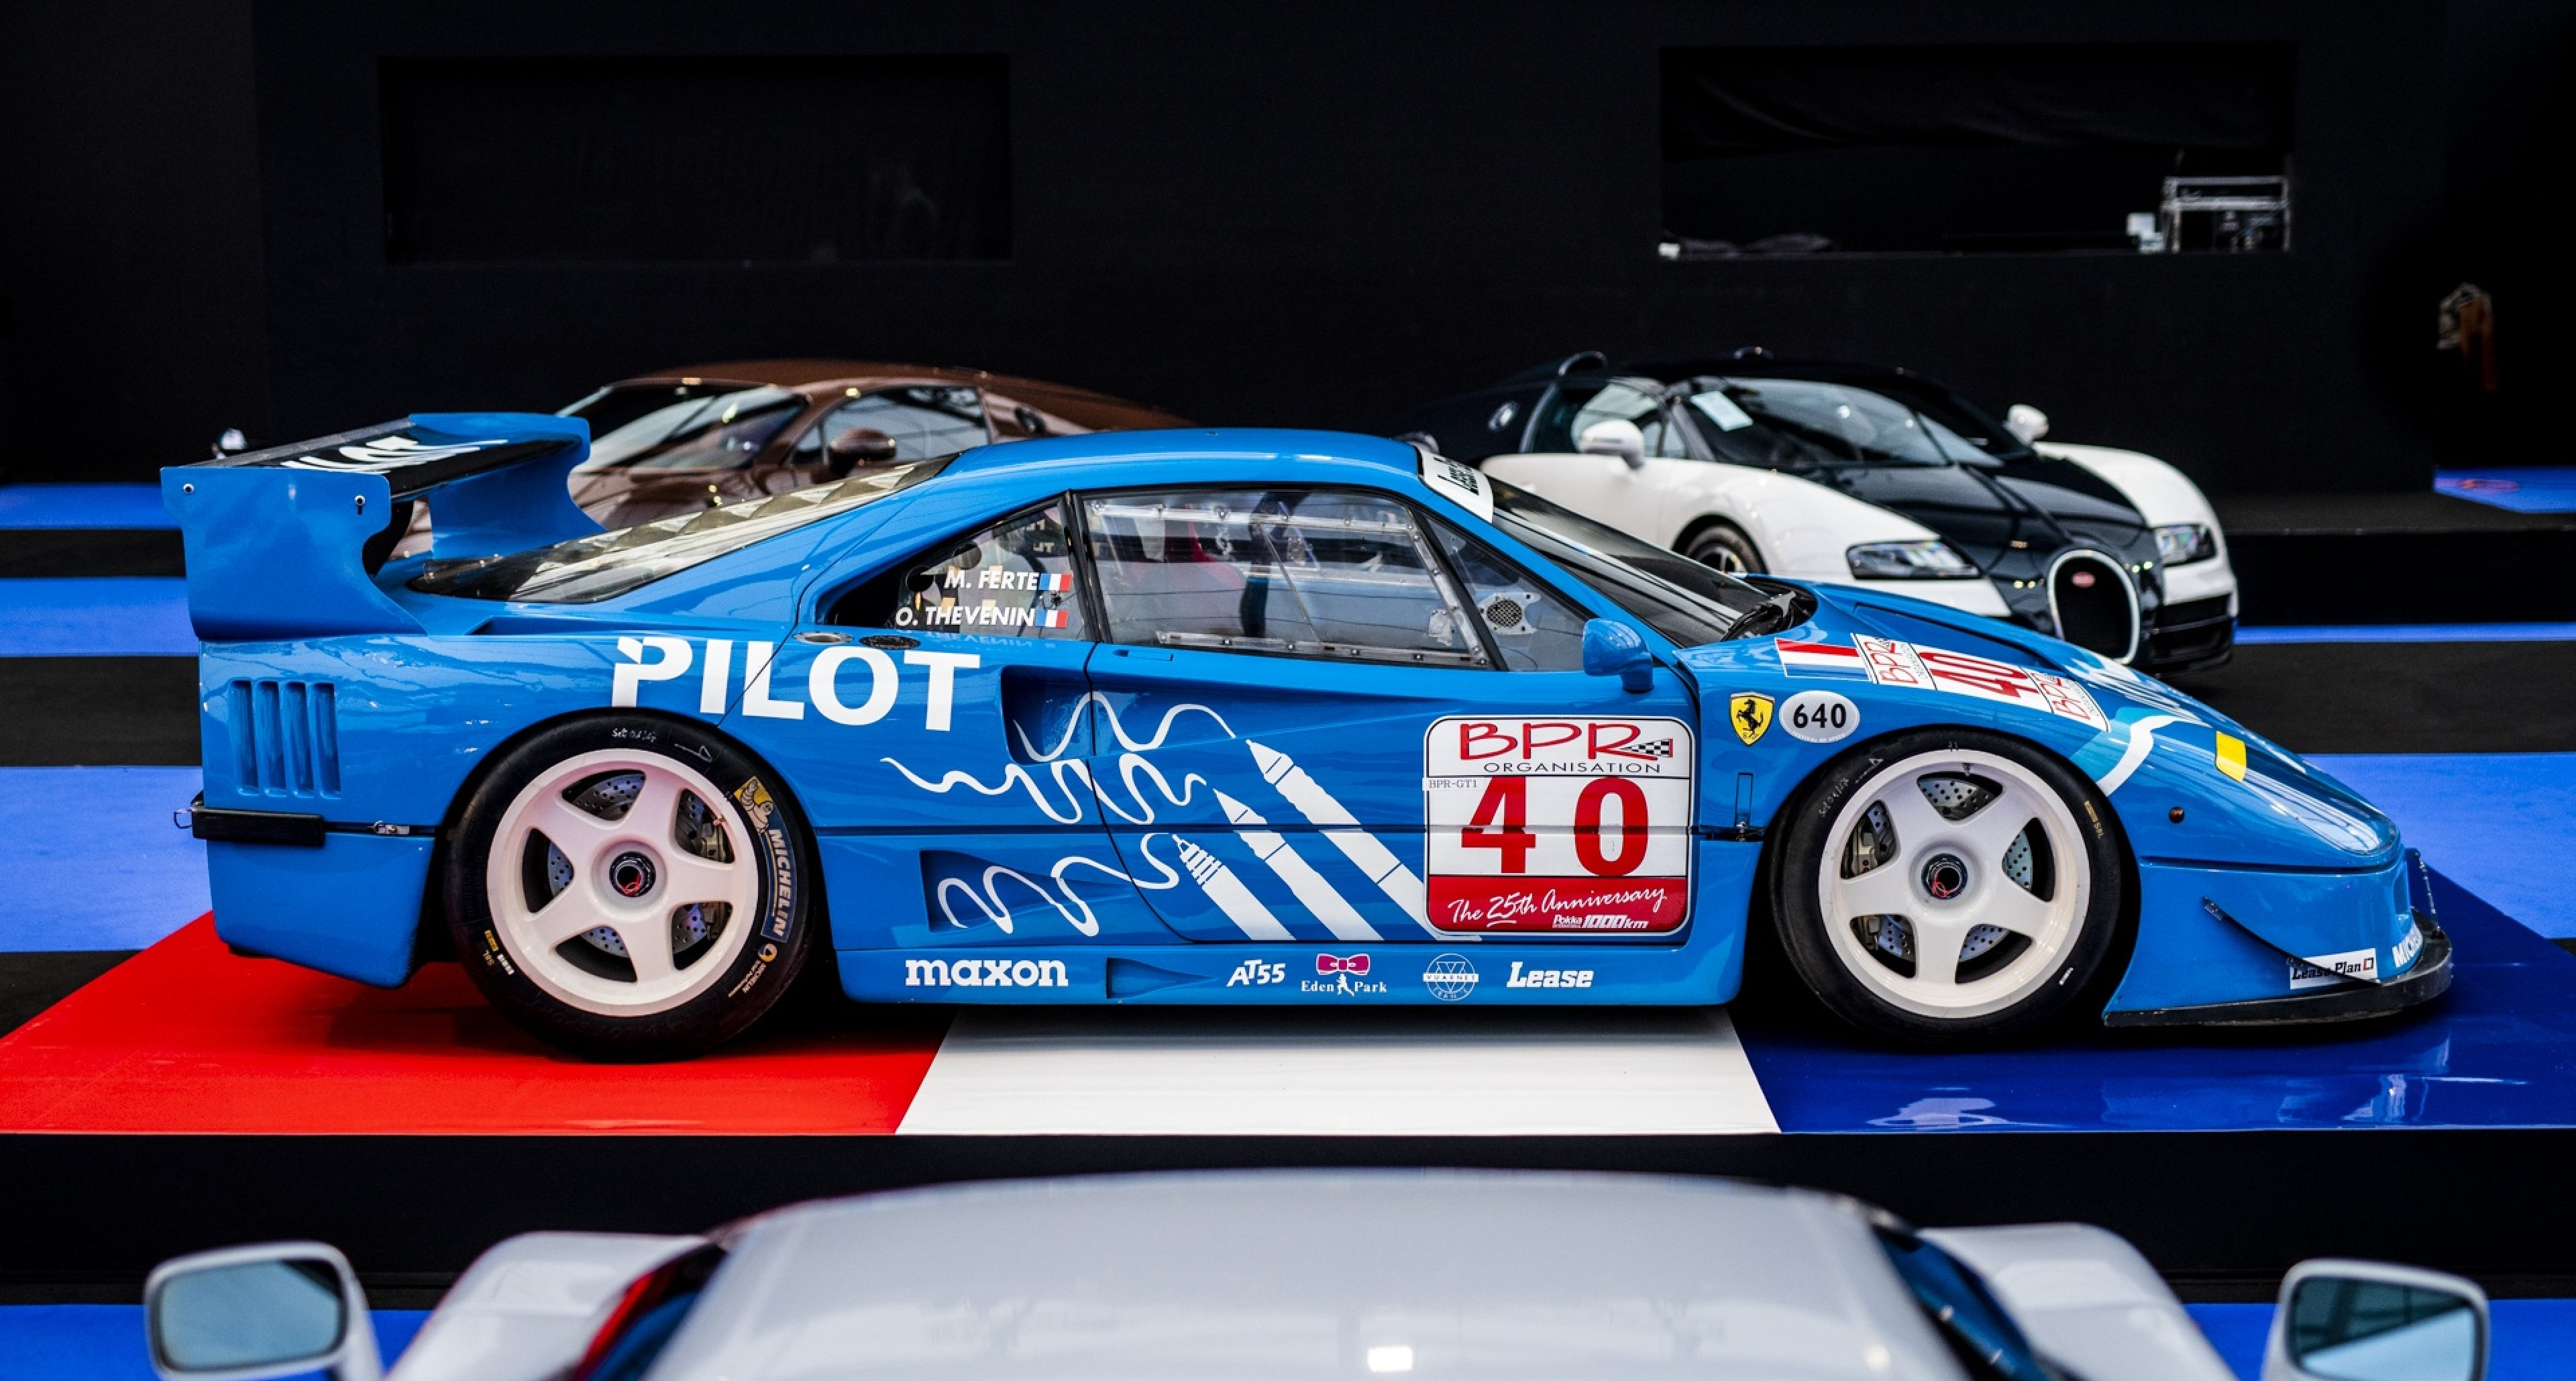 4 8m Ferrari F40 Lm Leads A Solid Charge For Rm Sotheby S In Paris Classic Driver Magazine